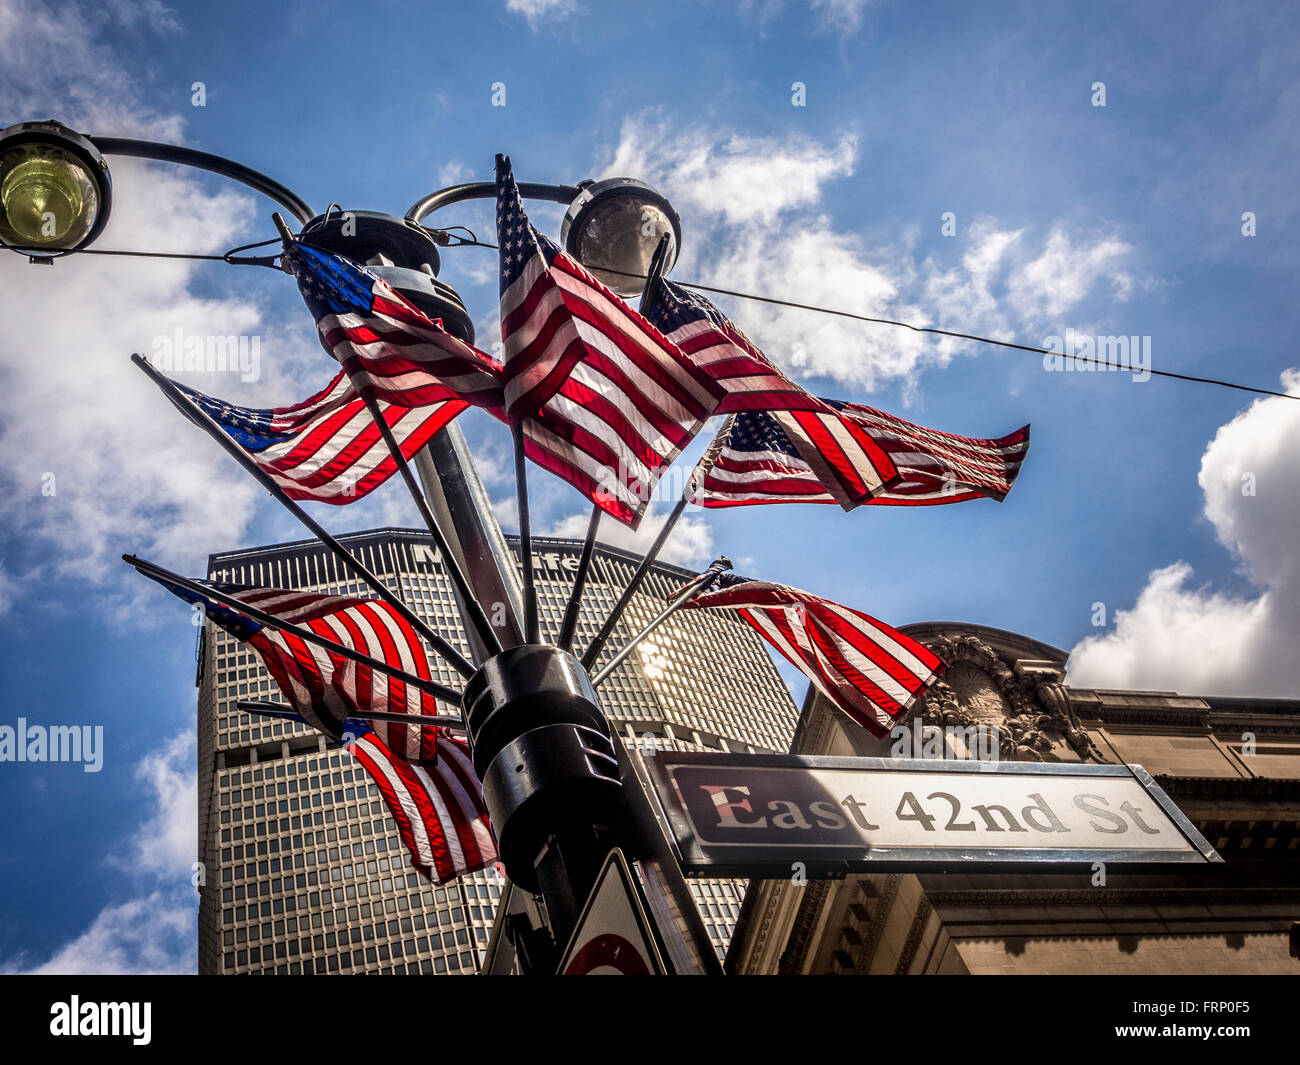 East 42nd St sign and group of American flags on lamppost, New York City, USA. - Stock Image